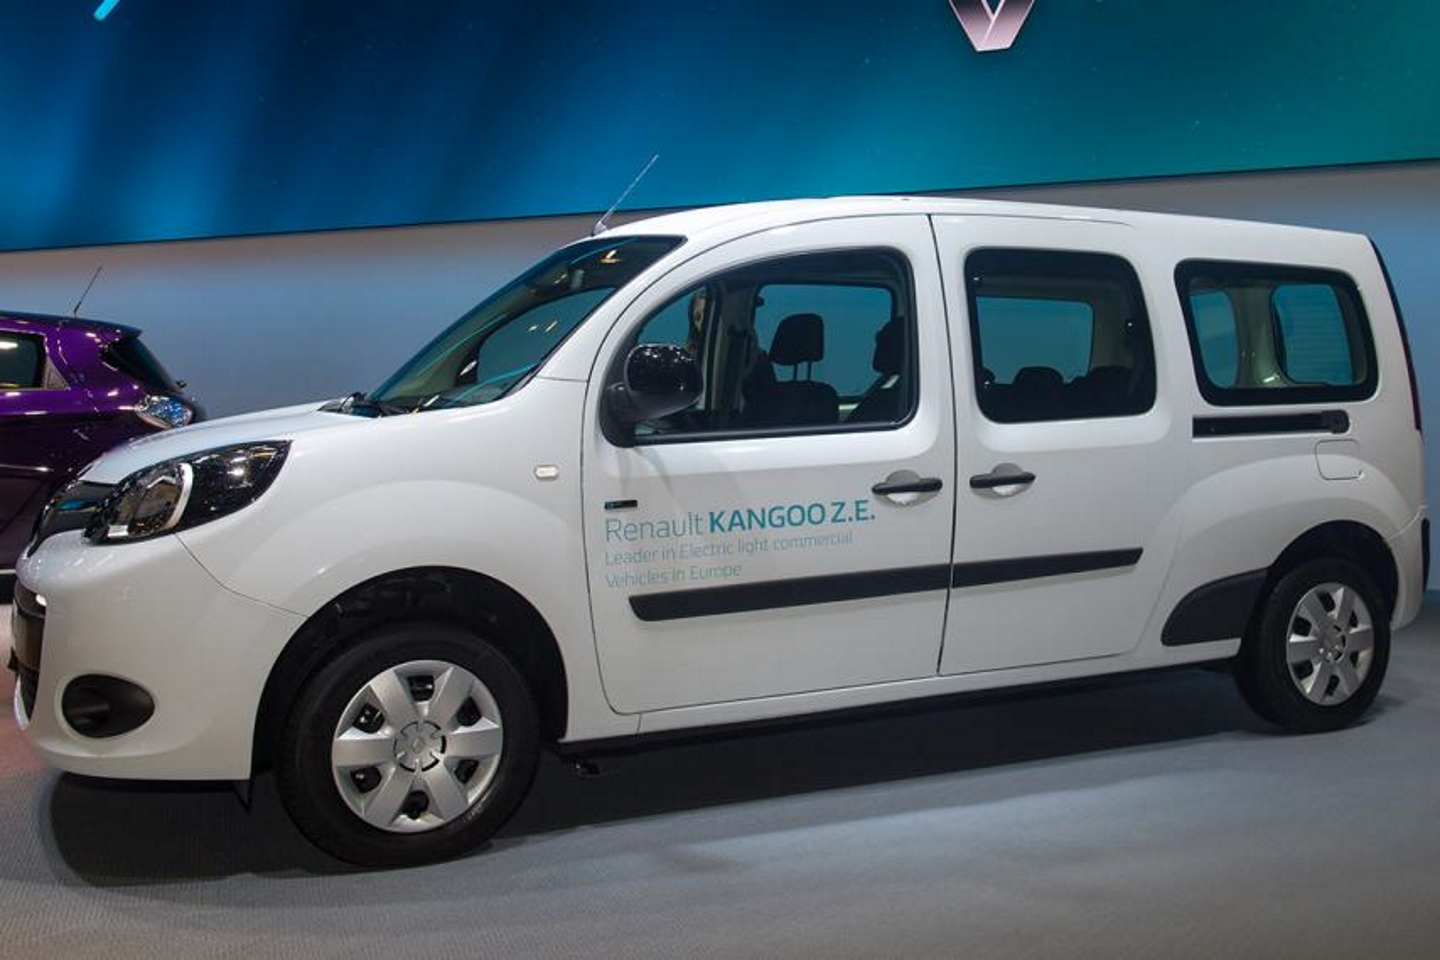 Renault Kangoo ZE. Фото: Robert Hradil/Getty Images